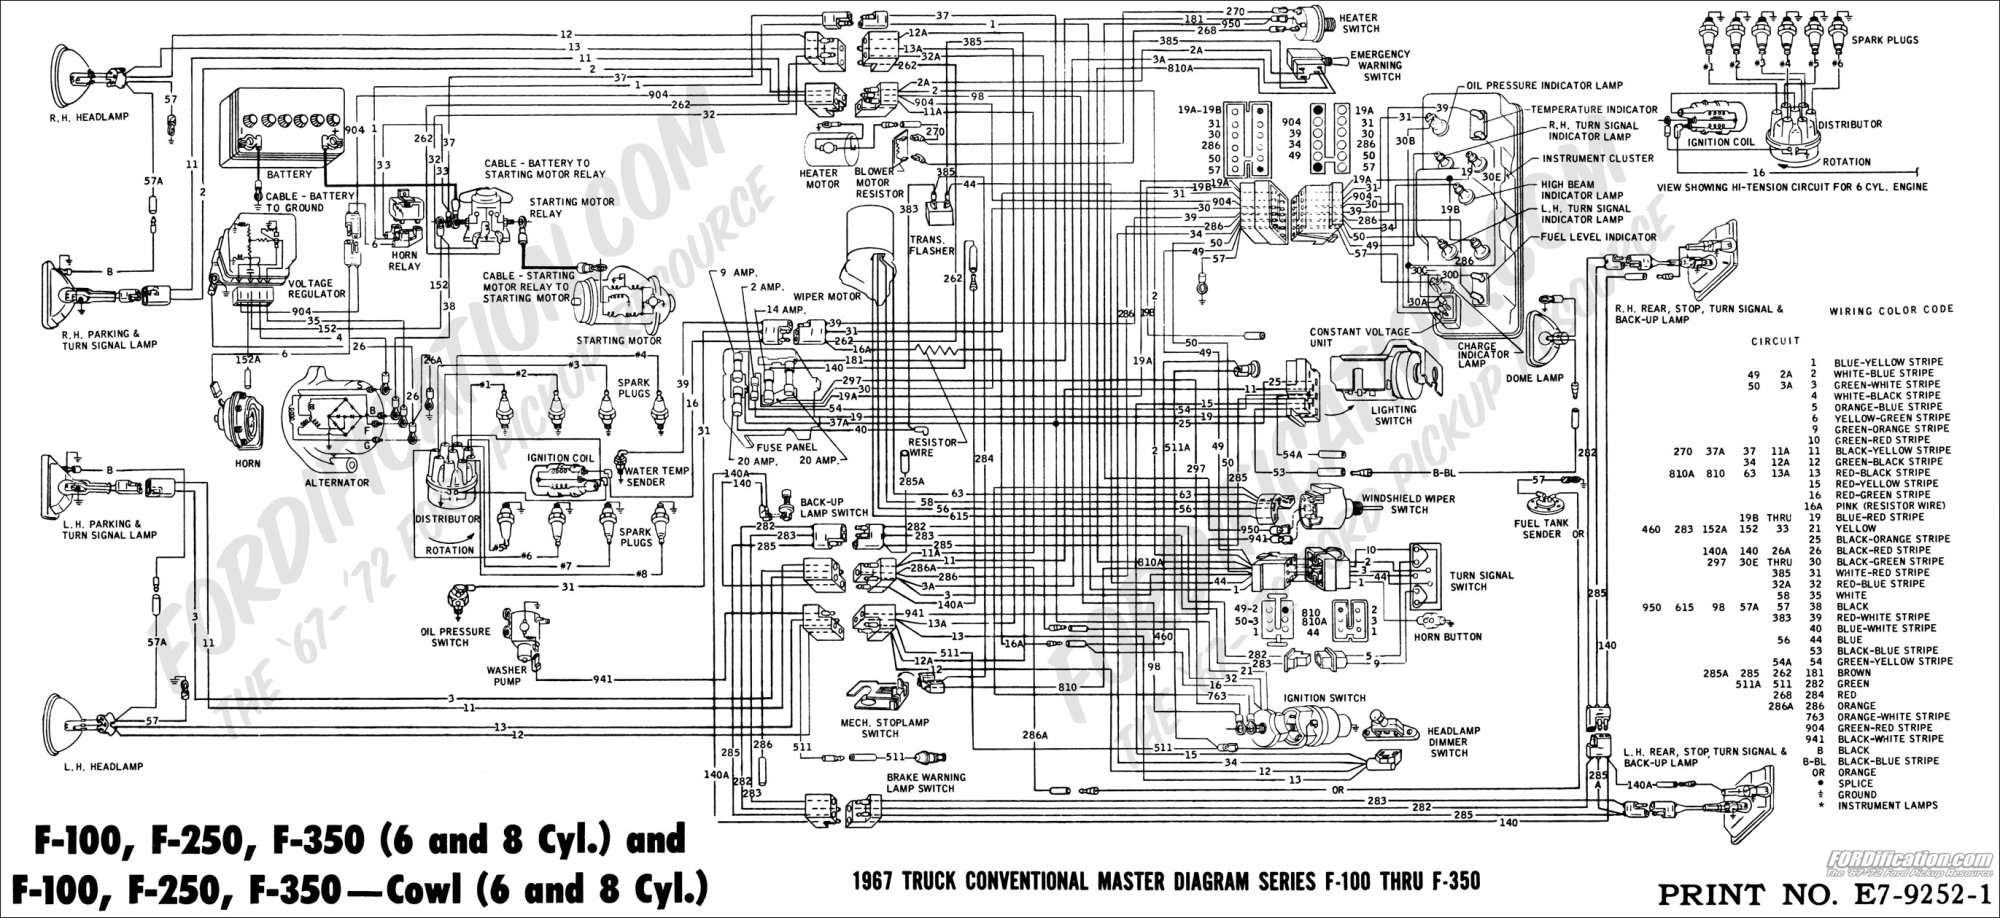 hight resolution of 1979 f250 wiring diagram wiring diagram centre 1979 ford f250 ignition wiring diagram 1979 f250 wiring